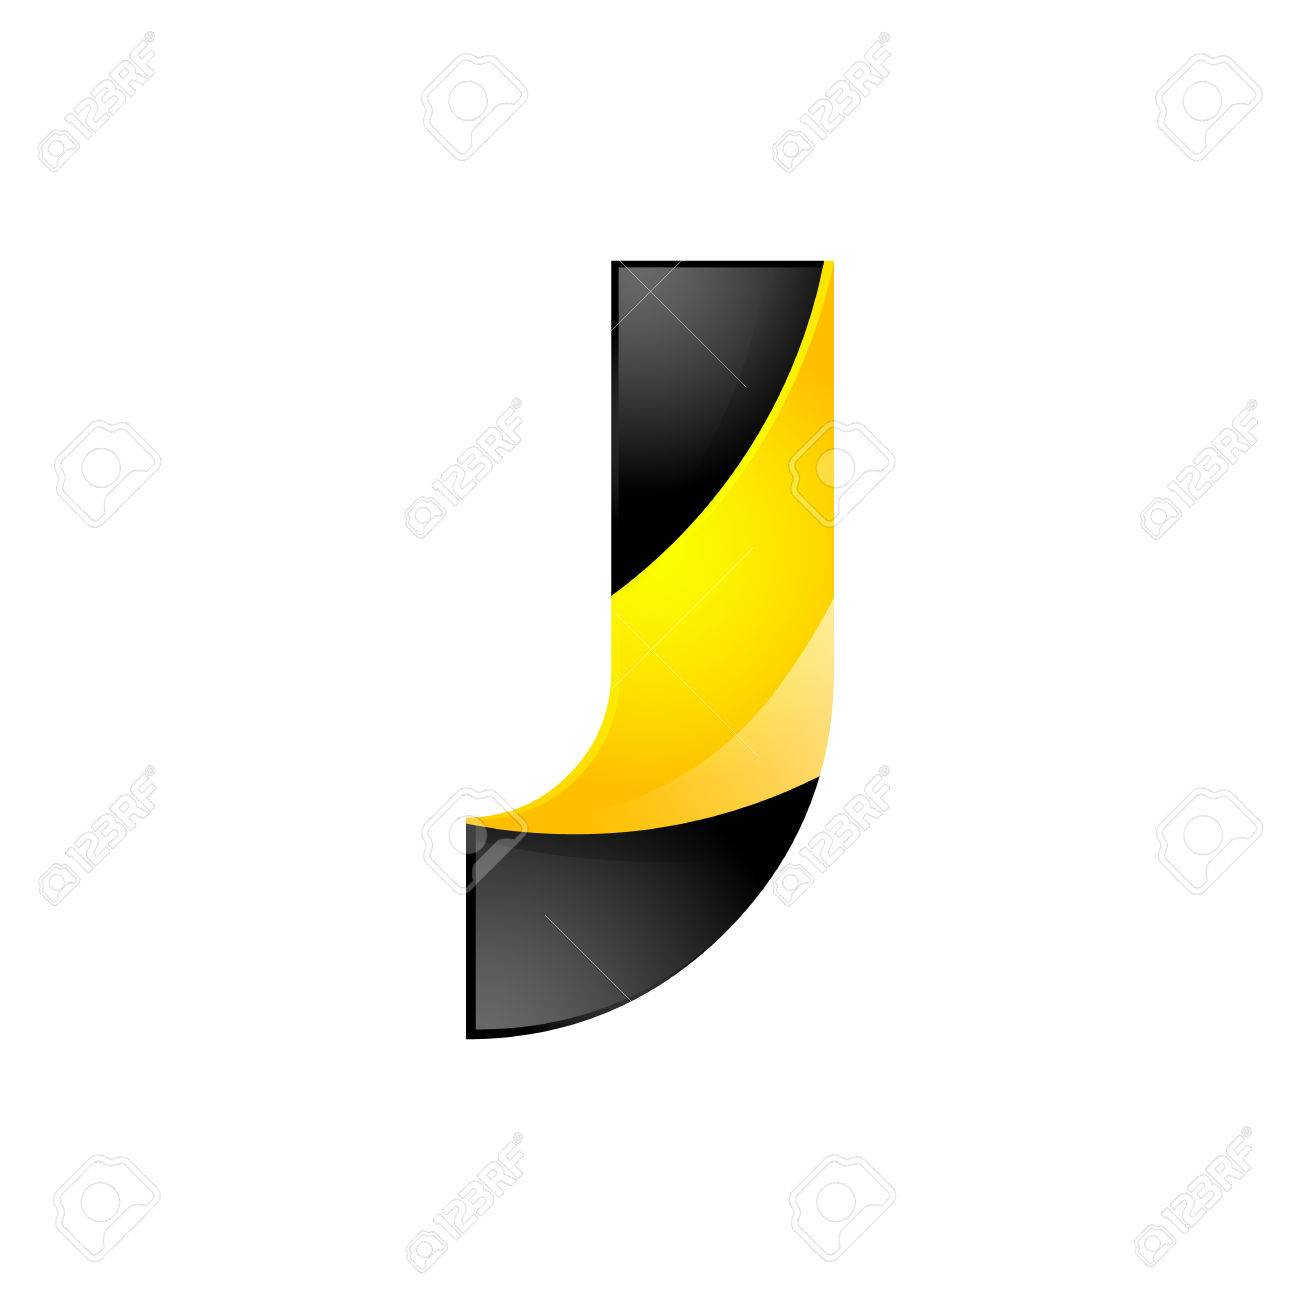 Creative Yellow And Black Symbol Letter J For Your Application Or Company Design Alphabet Graphics 3d